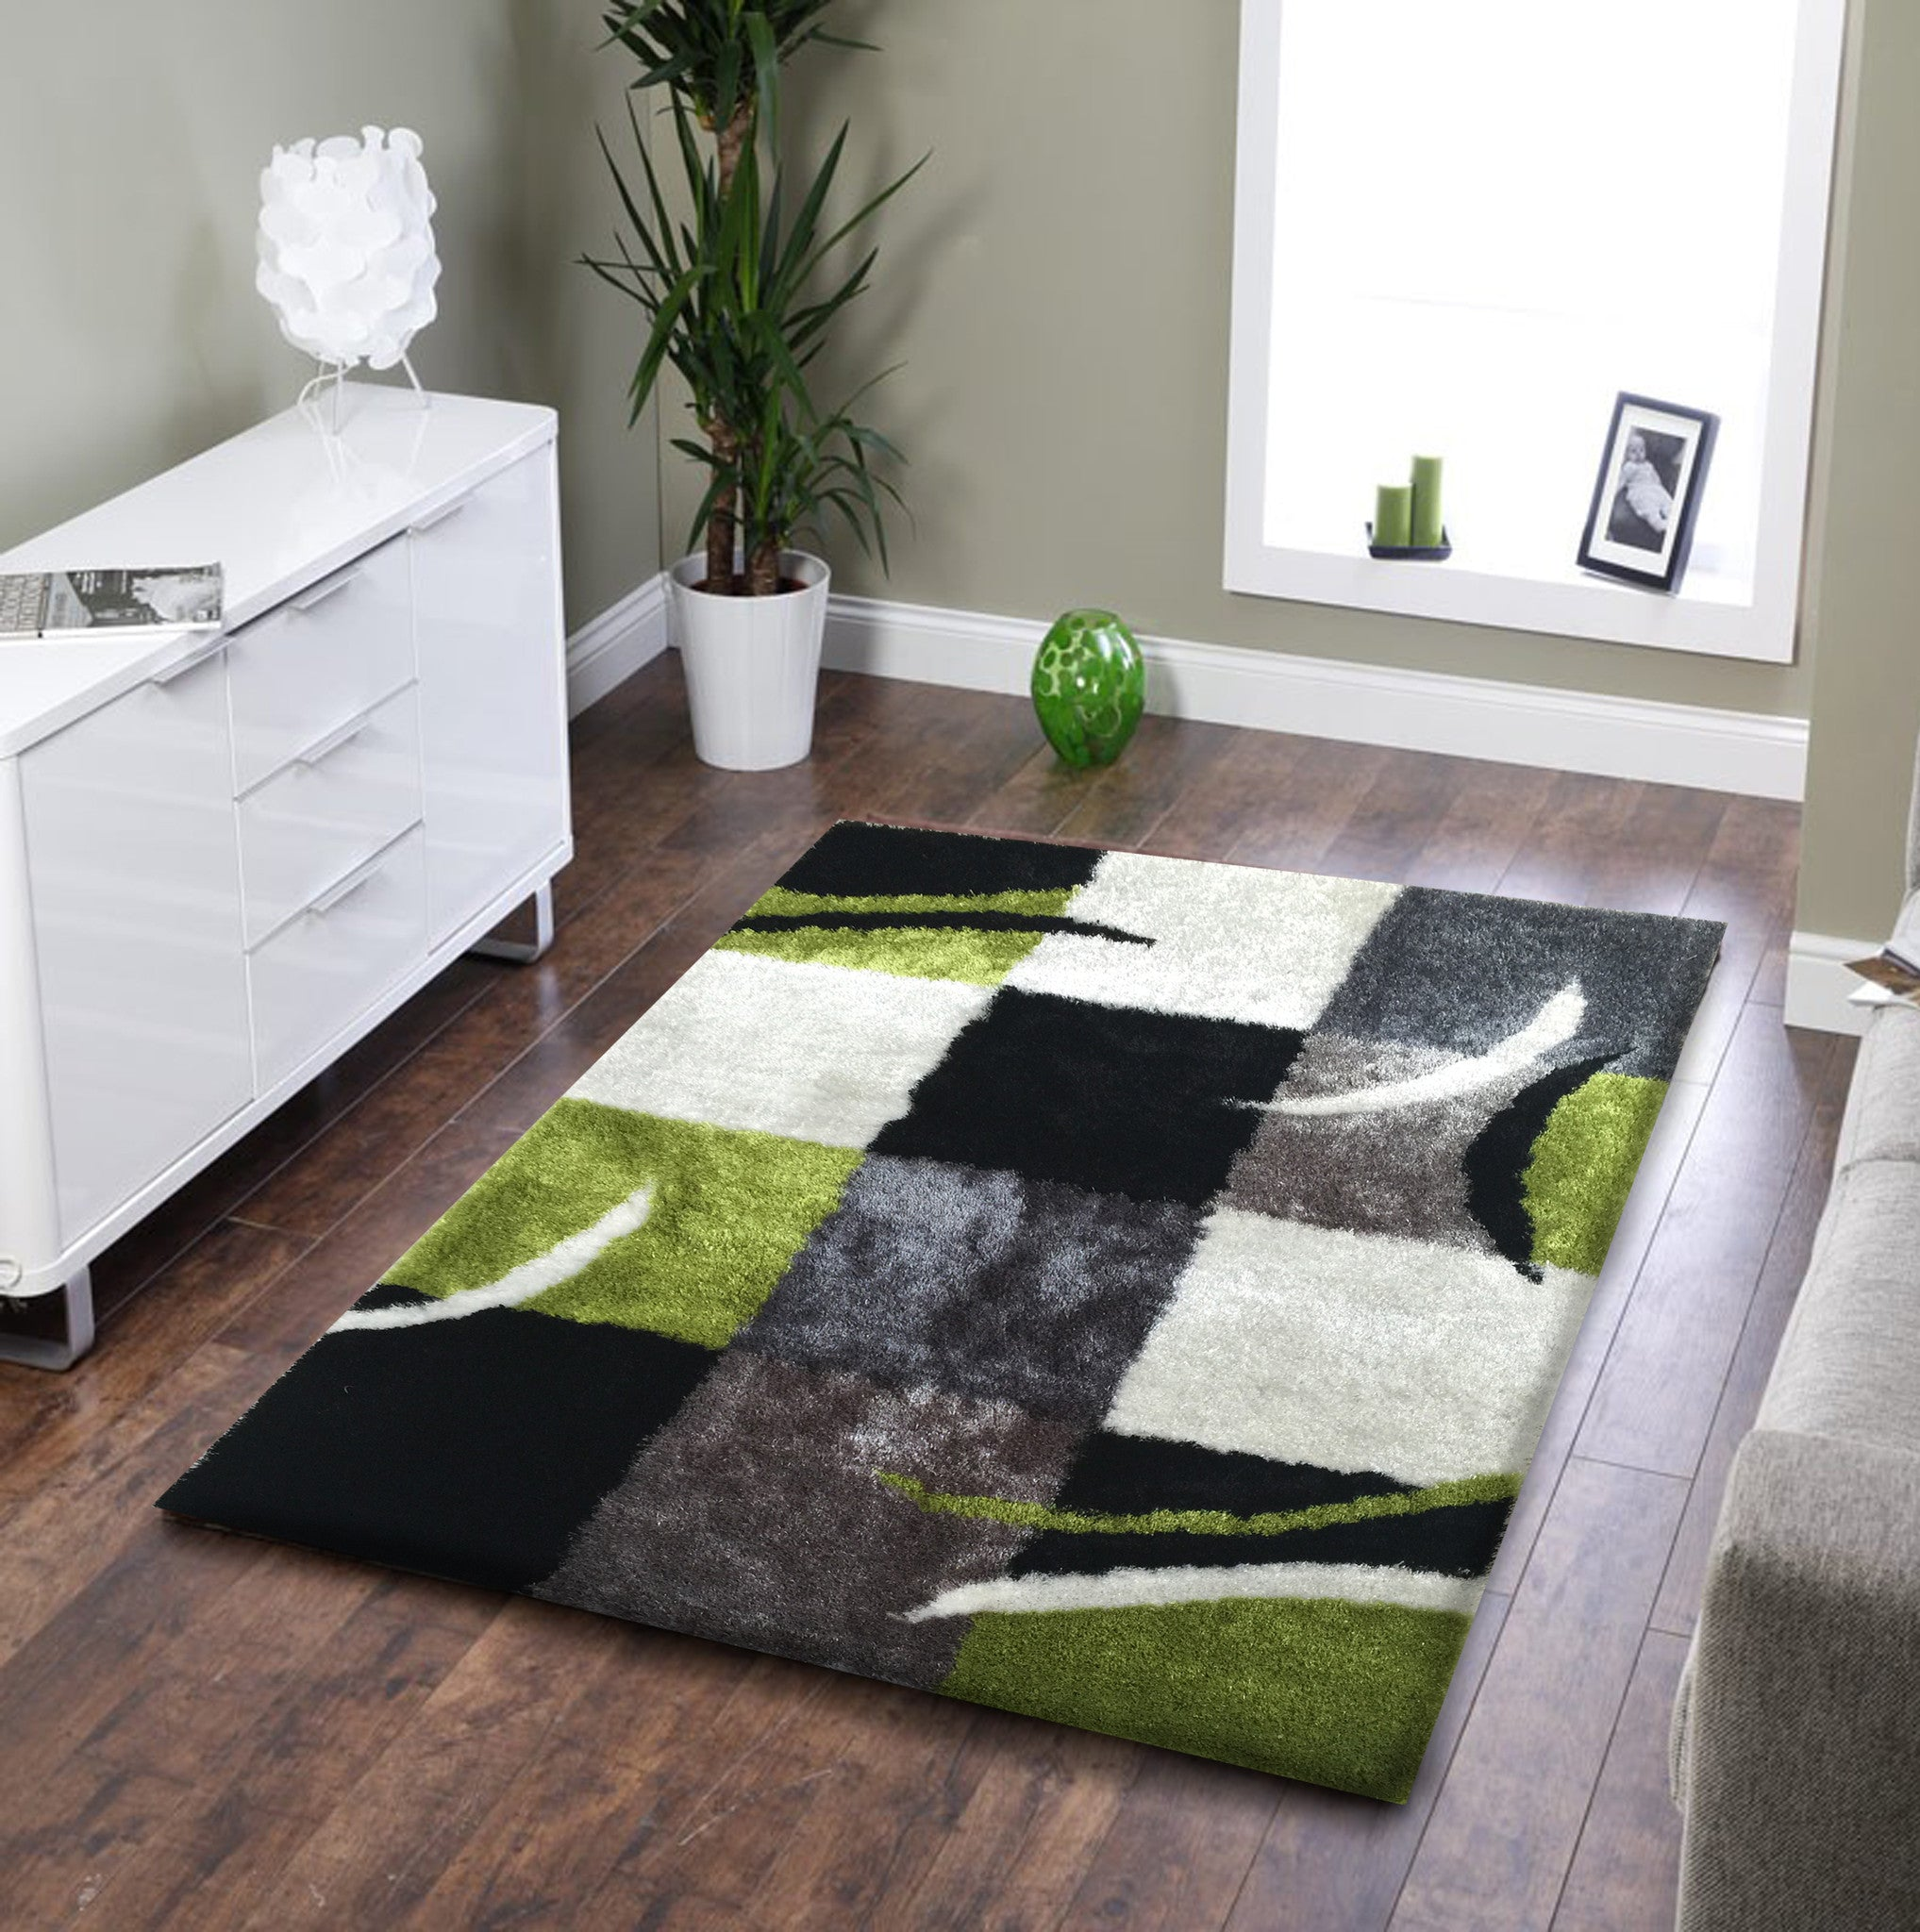 Black Area Rugs soft indoor bedroom shag area rug black with grey and green - rug